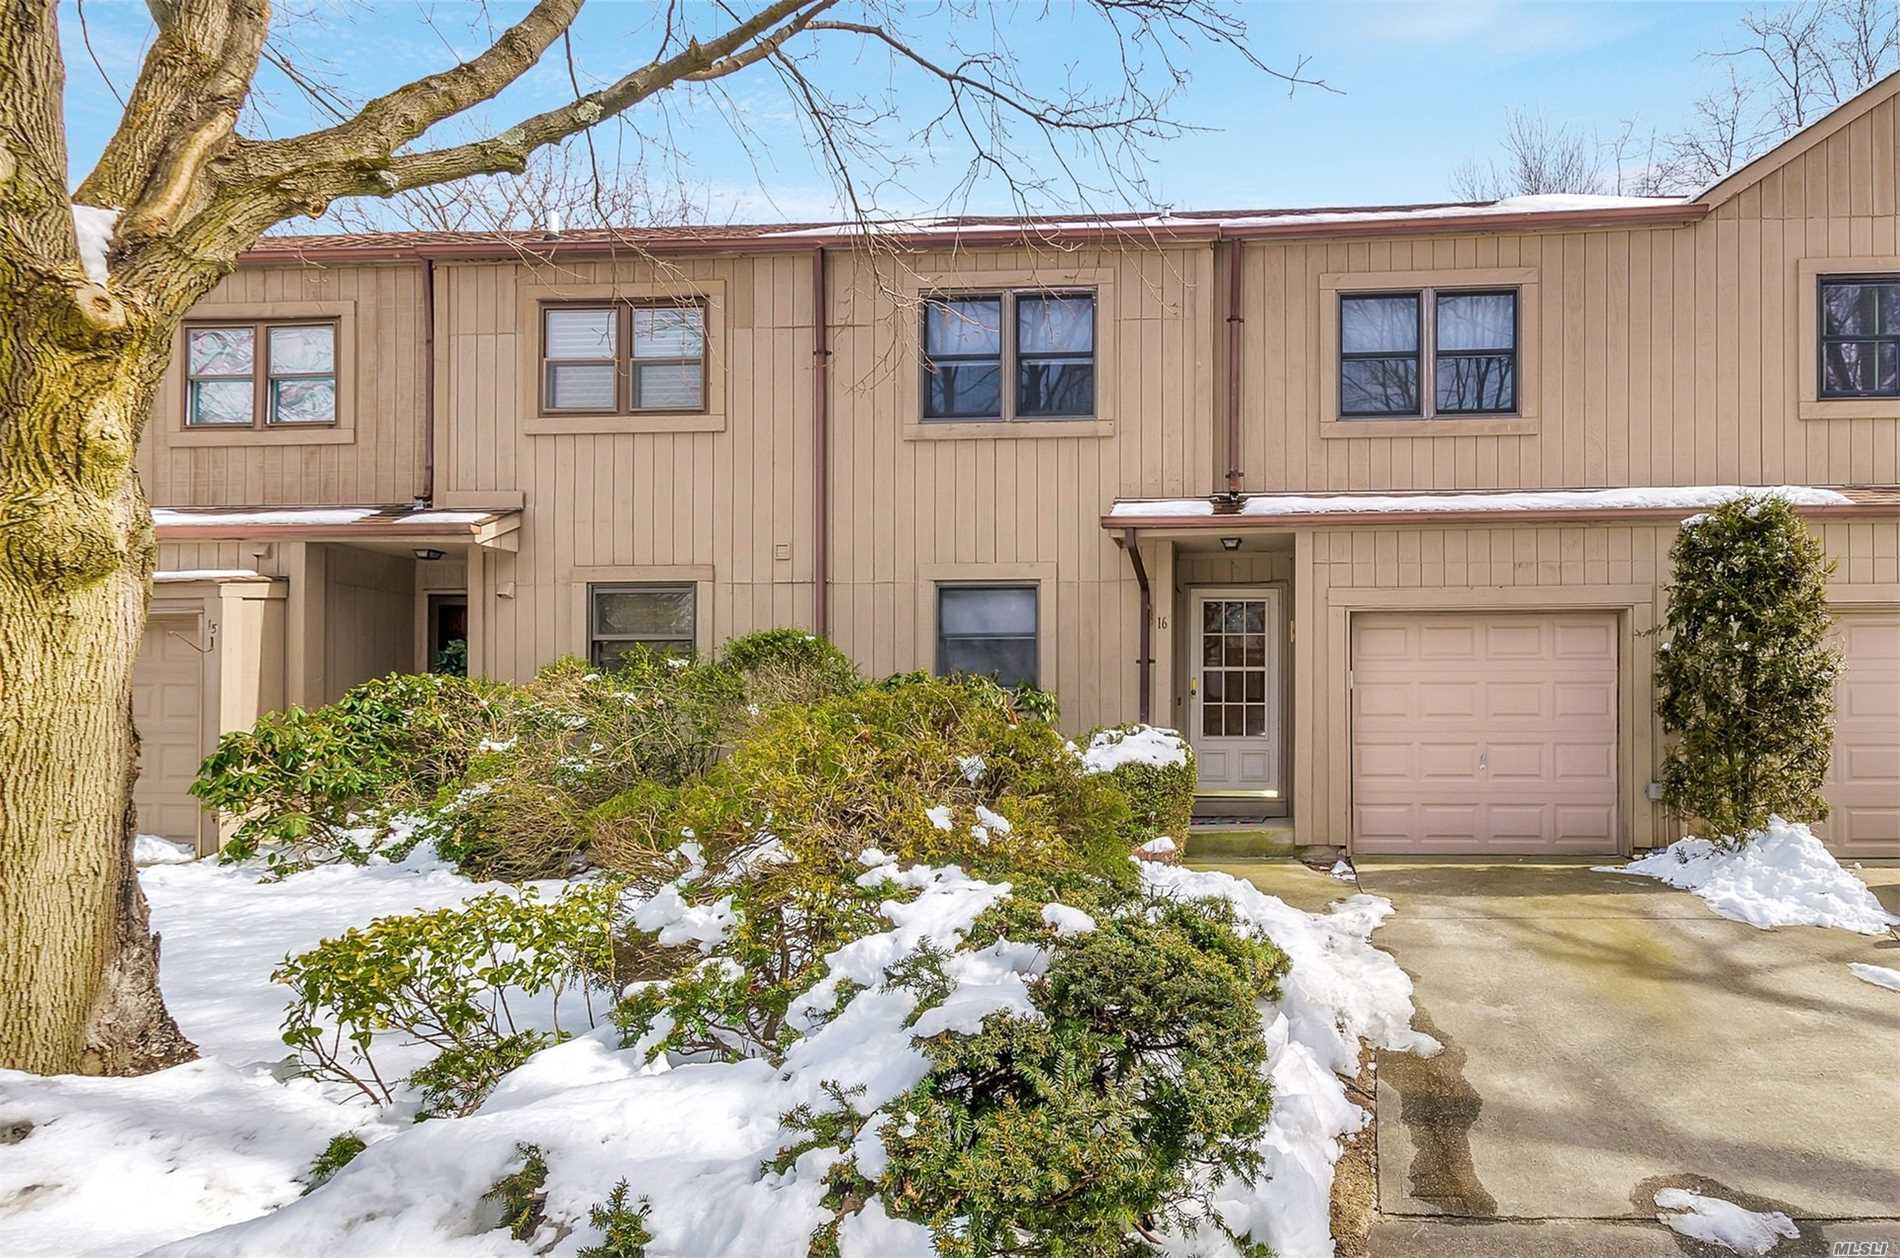 Lovely 2 Bedroom, 2.5 Bath with Hardwood Flooring, Spacious Master Bedroom with Walk in Closet and Private Bathroom. There is a 1 car attached garage, Finished Den with Slider to Patio in Basement Area Plus Storage